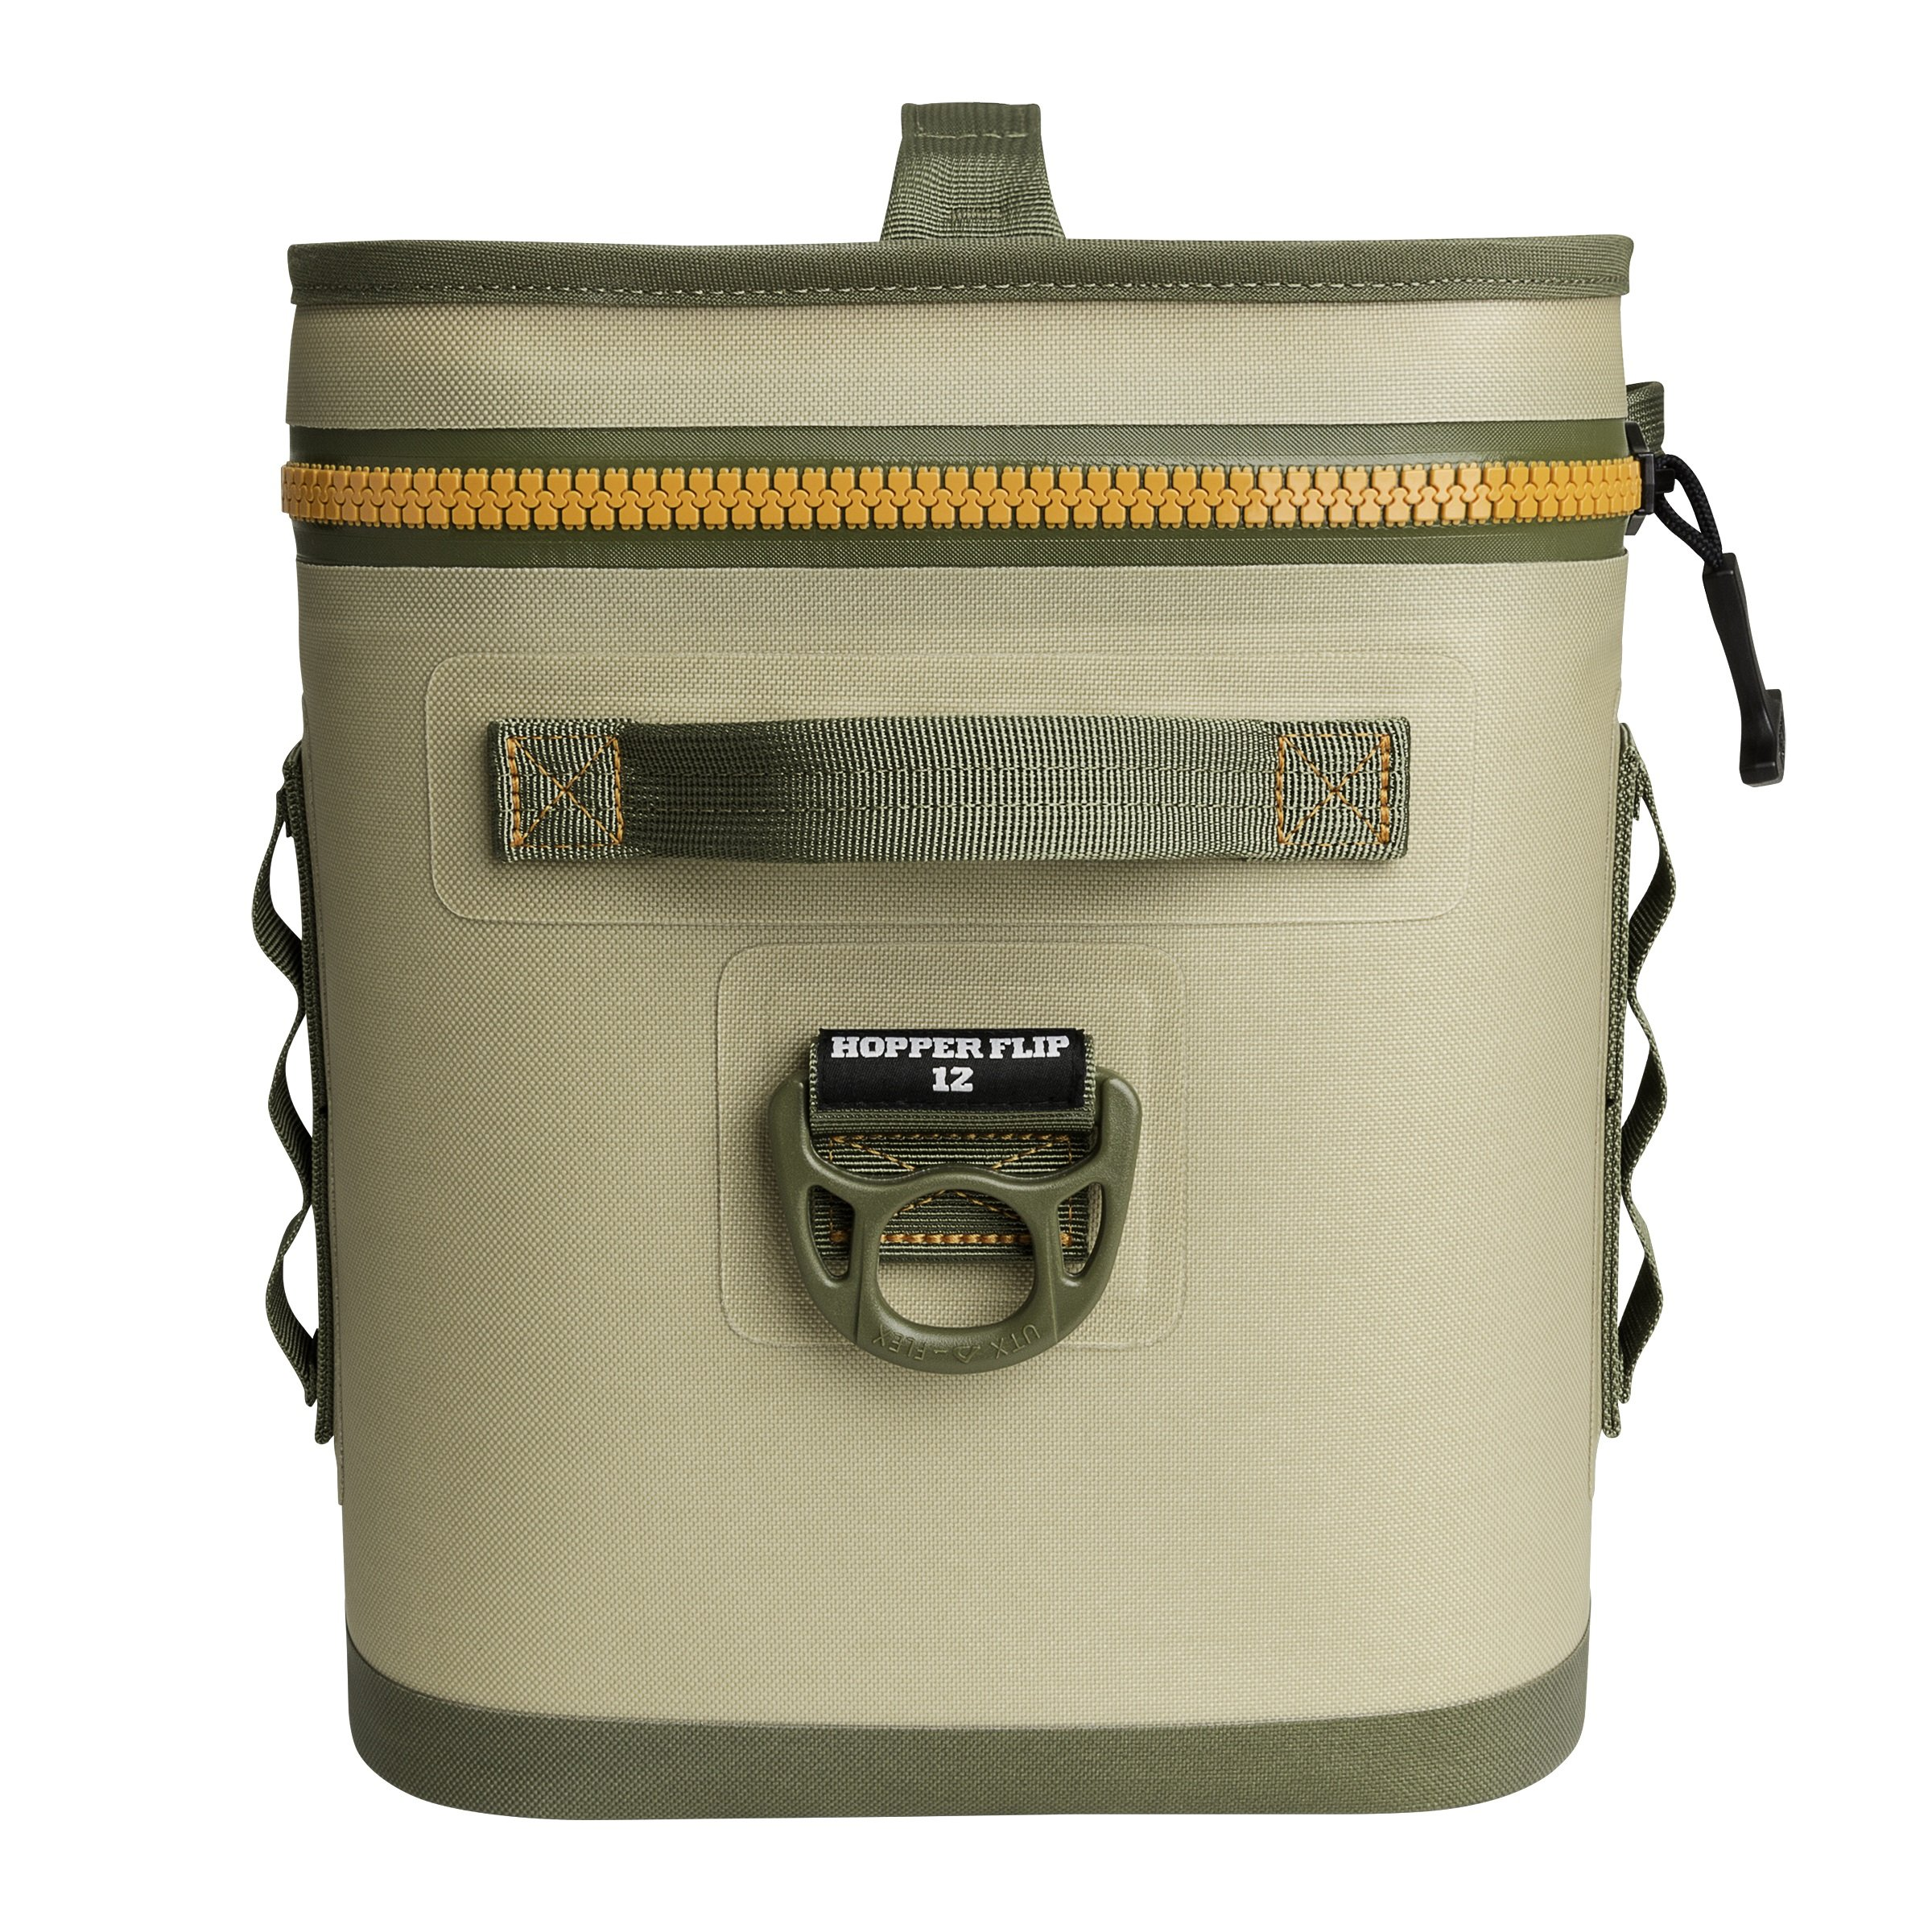 YETI Hopper Flip 12 Portable Cooler with Top Handle, Field Tan by YETI (Image #5)